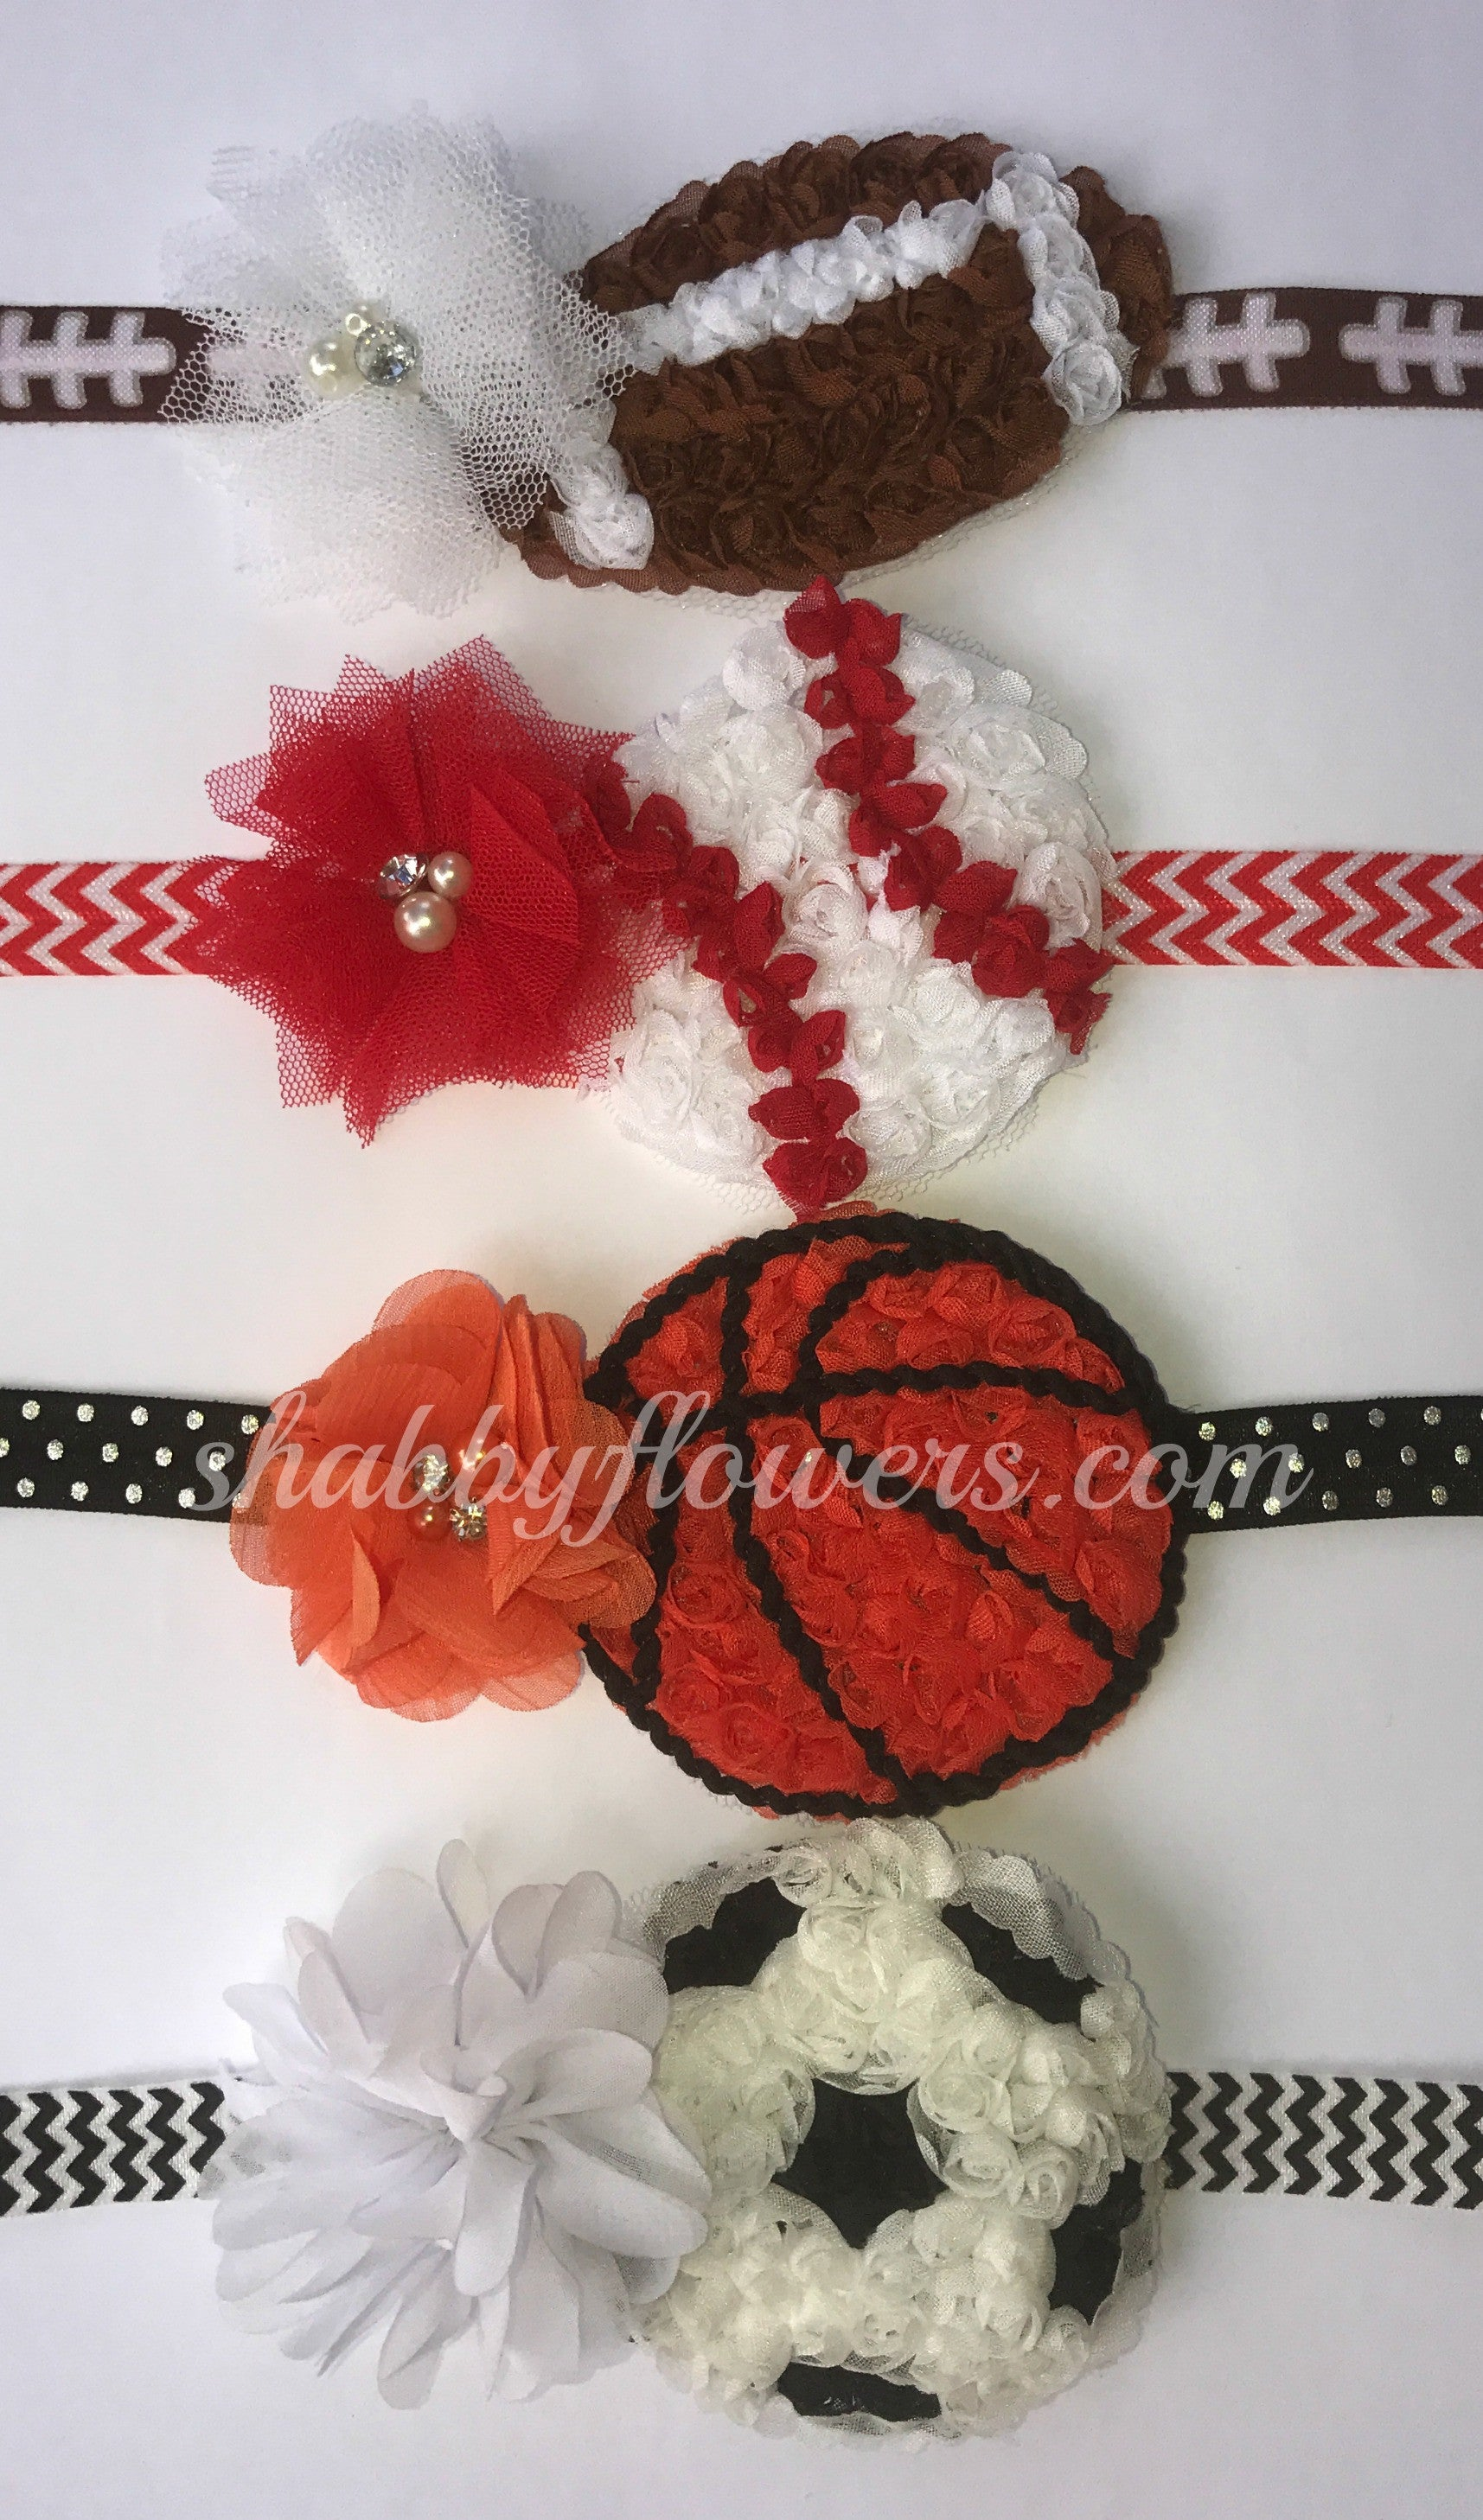 Petite Headband Sports Kits - Football, Baseball, Basketball and Soccer - shabbyflowers.com